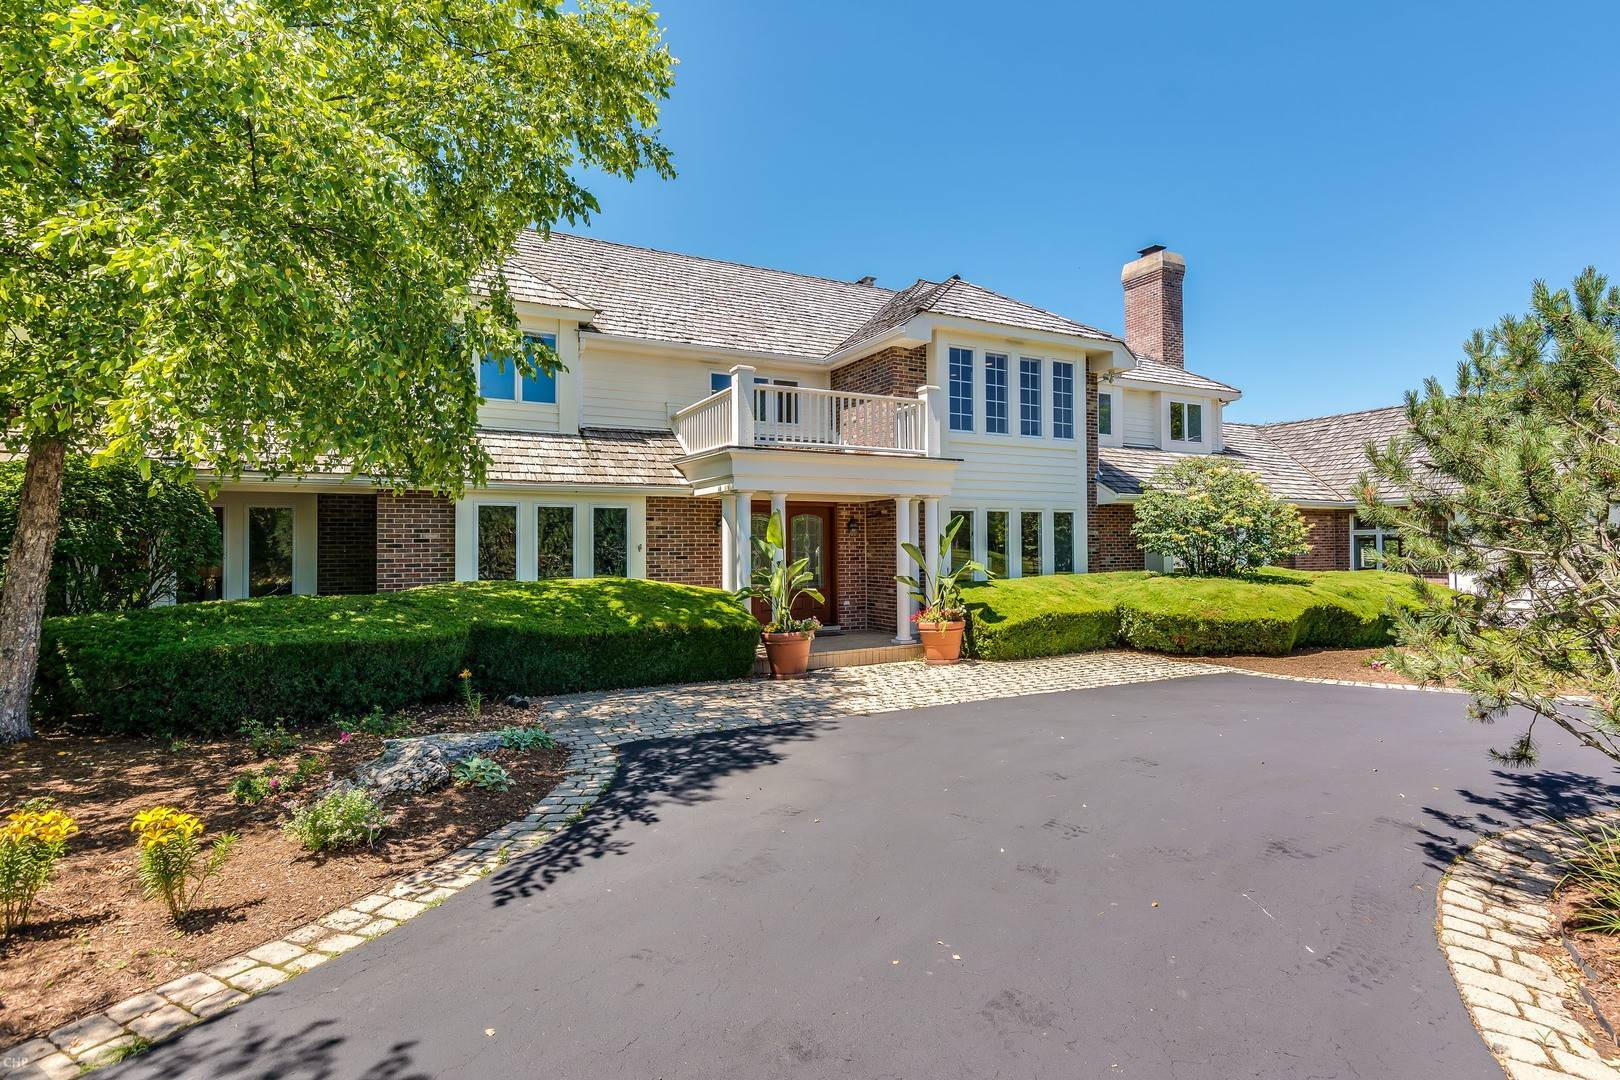 Single Family Homes for Sale at 15044 W Little Saint Marys Road Libertyville, Illinois 60048 United States